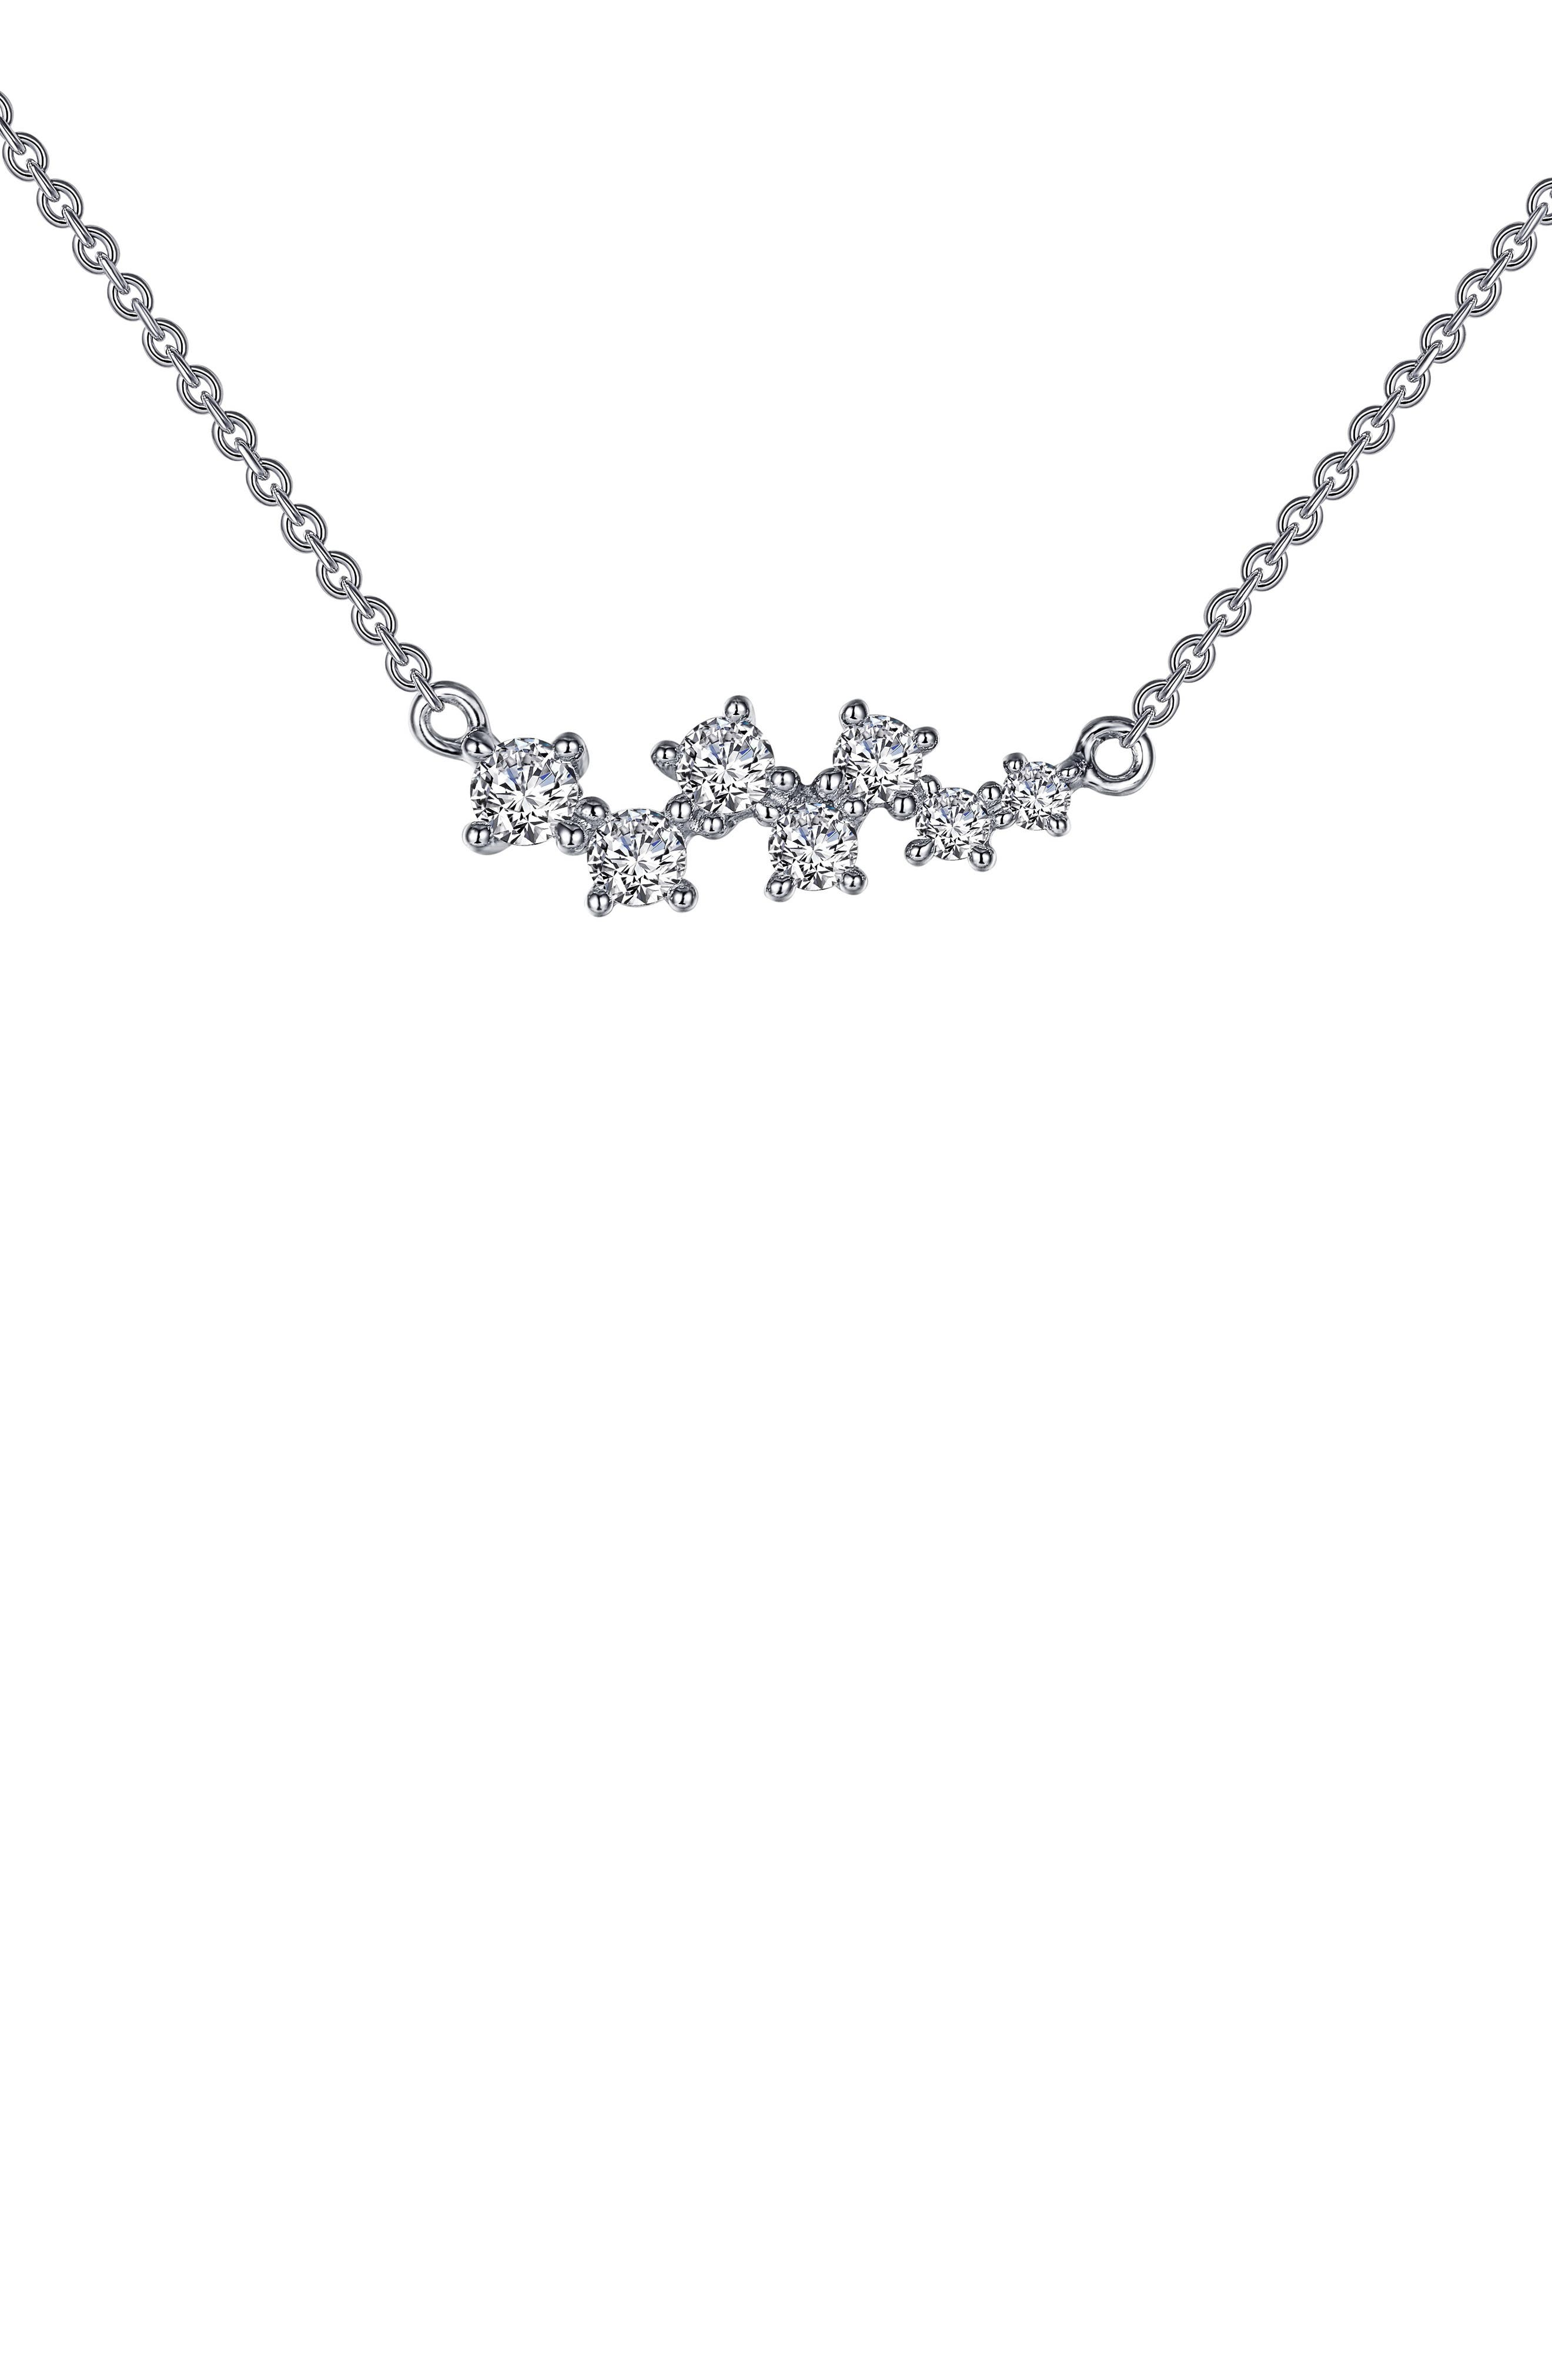 Seven graduated simulated diamonds sparkle from a delicate chain necklace crafted in polished sterling silver bonded with platinum. Style Name: Lafonn Seven Symbols Of Joy Necklace. Style Number: 5884463. Available in stores.